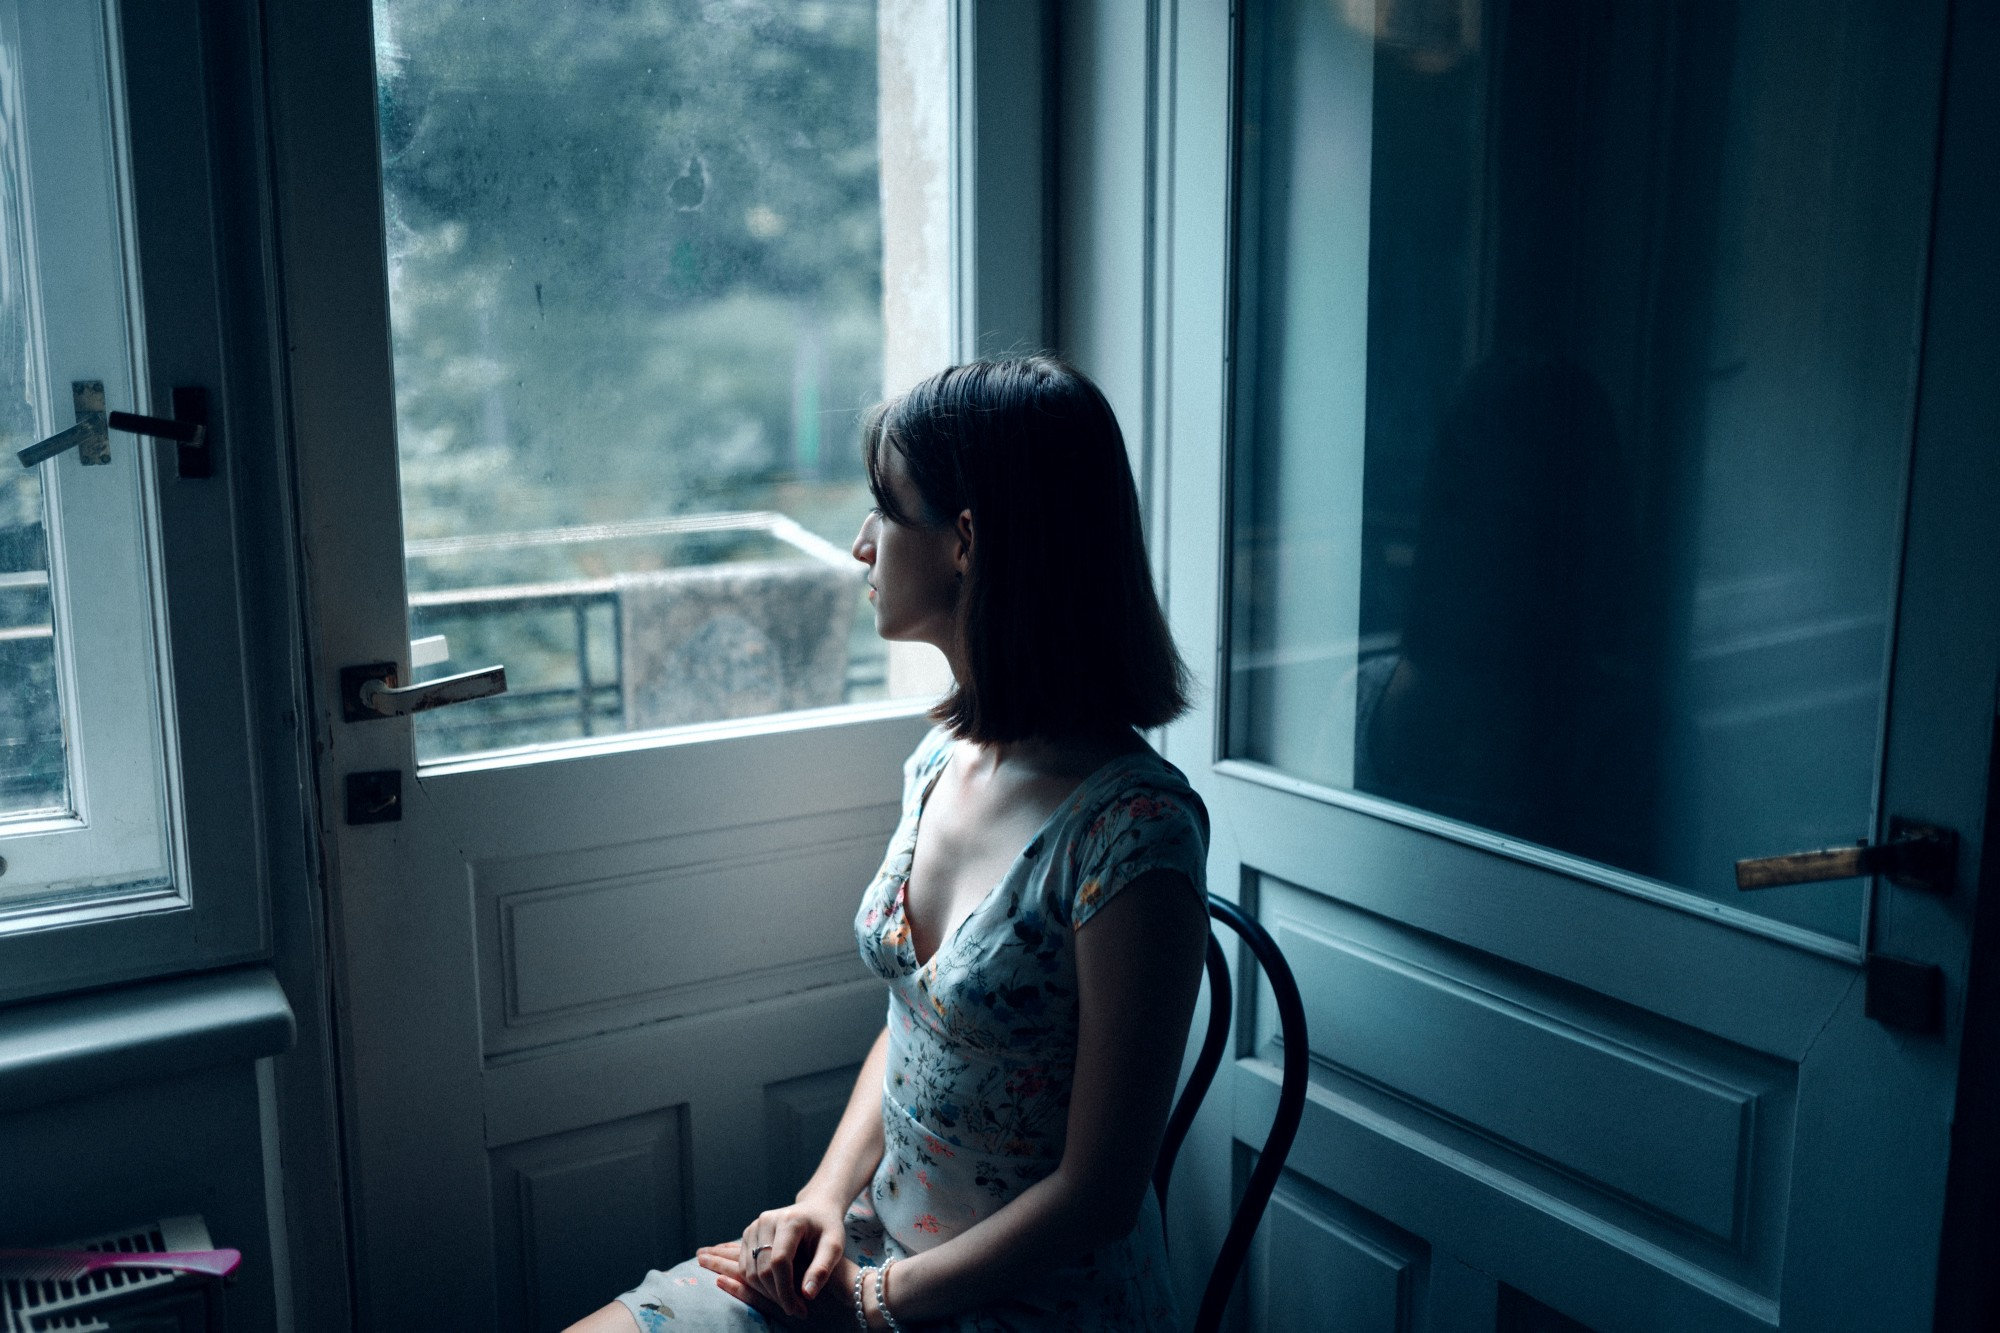 A woman with a white dress, stared at the window.